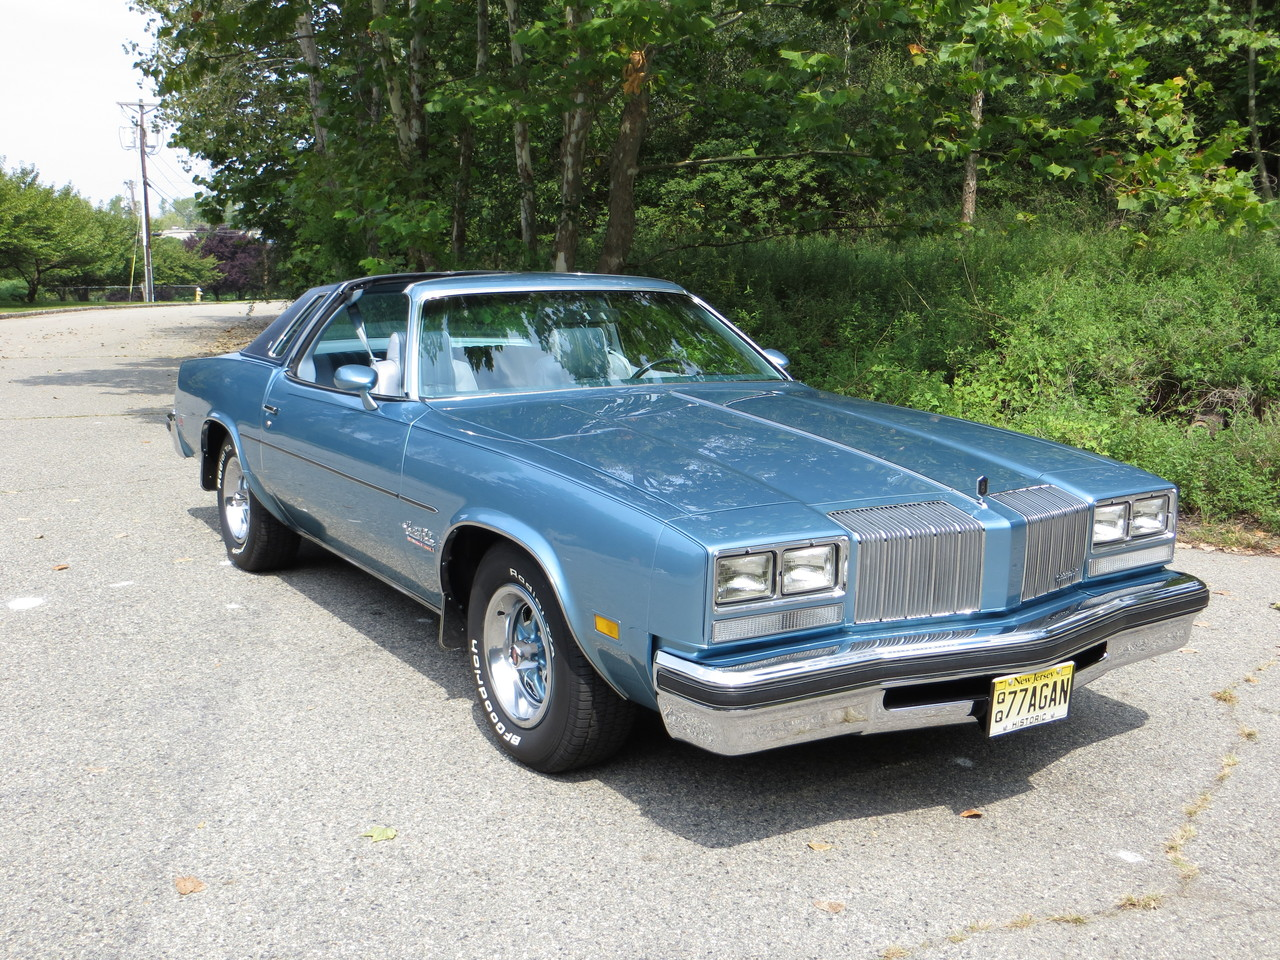 big blue 1977 cutlass salon oldsmobile photes